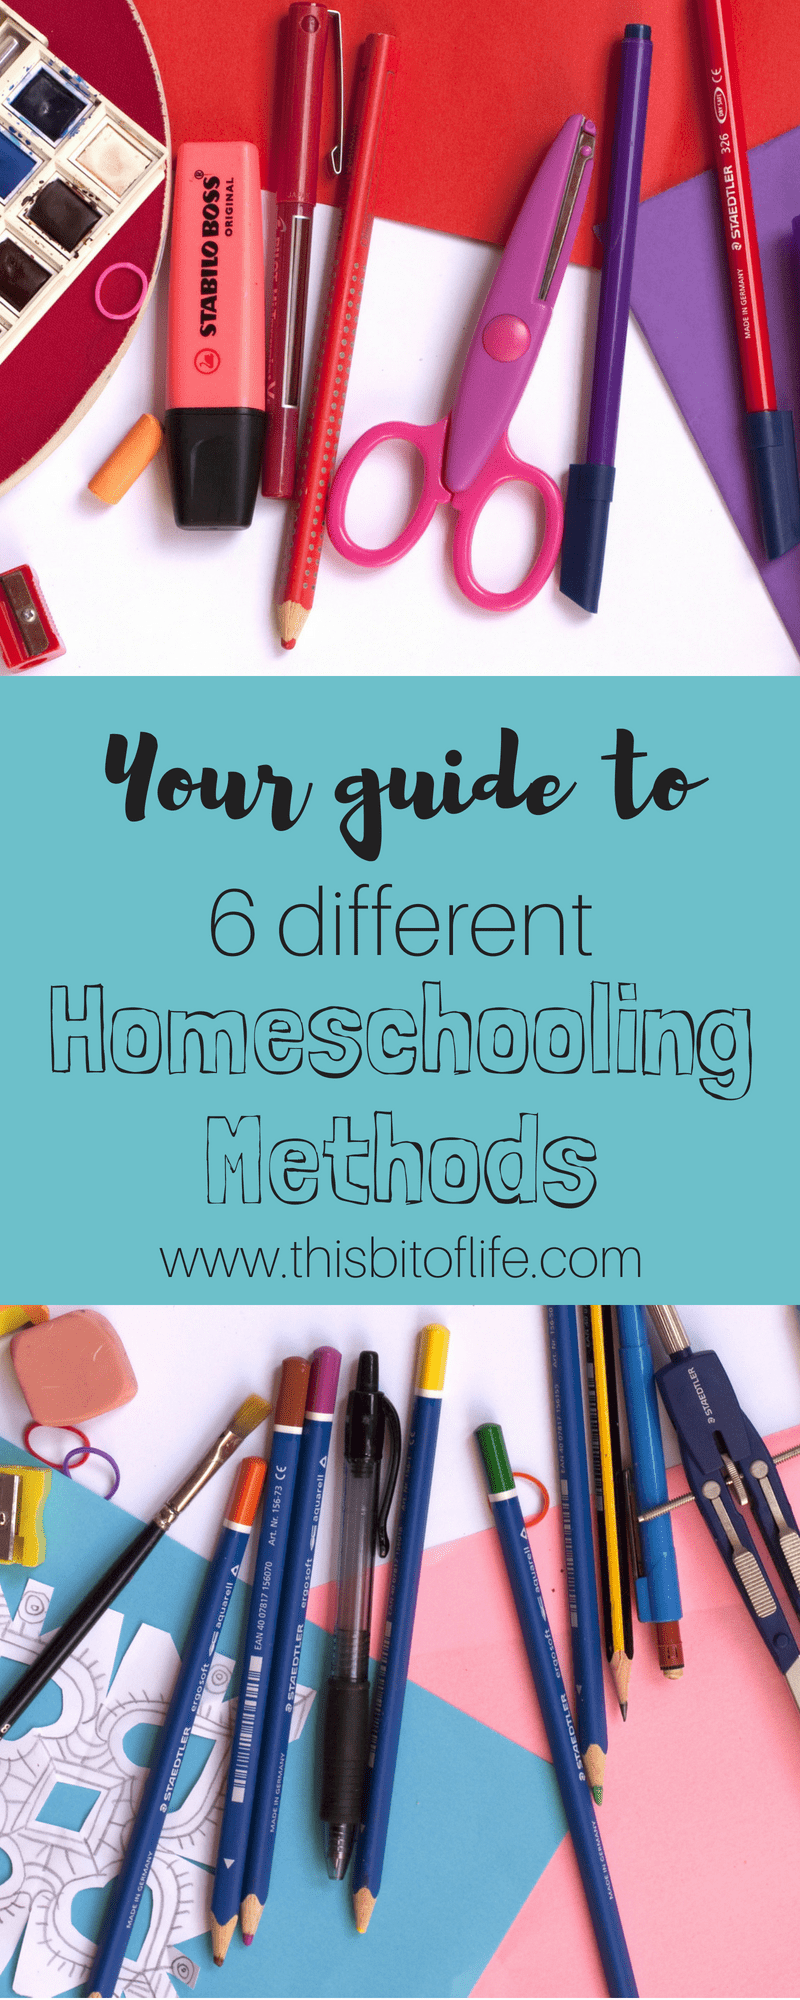 Your Guide to 6 Different Homeschooling Methods. This guide will help you learn which homeschool method suits your family's needs the best. #homeschool #homeschoolingmethods